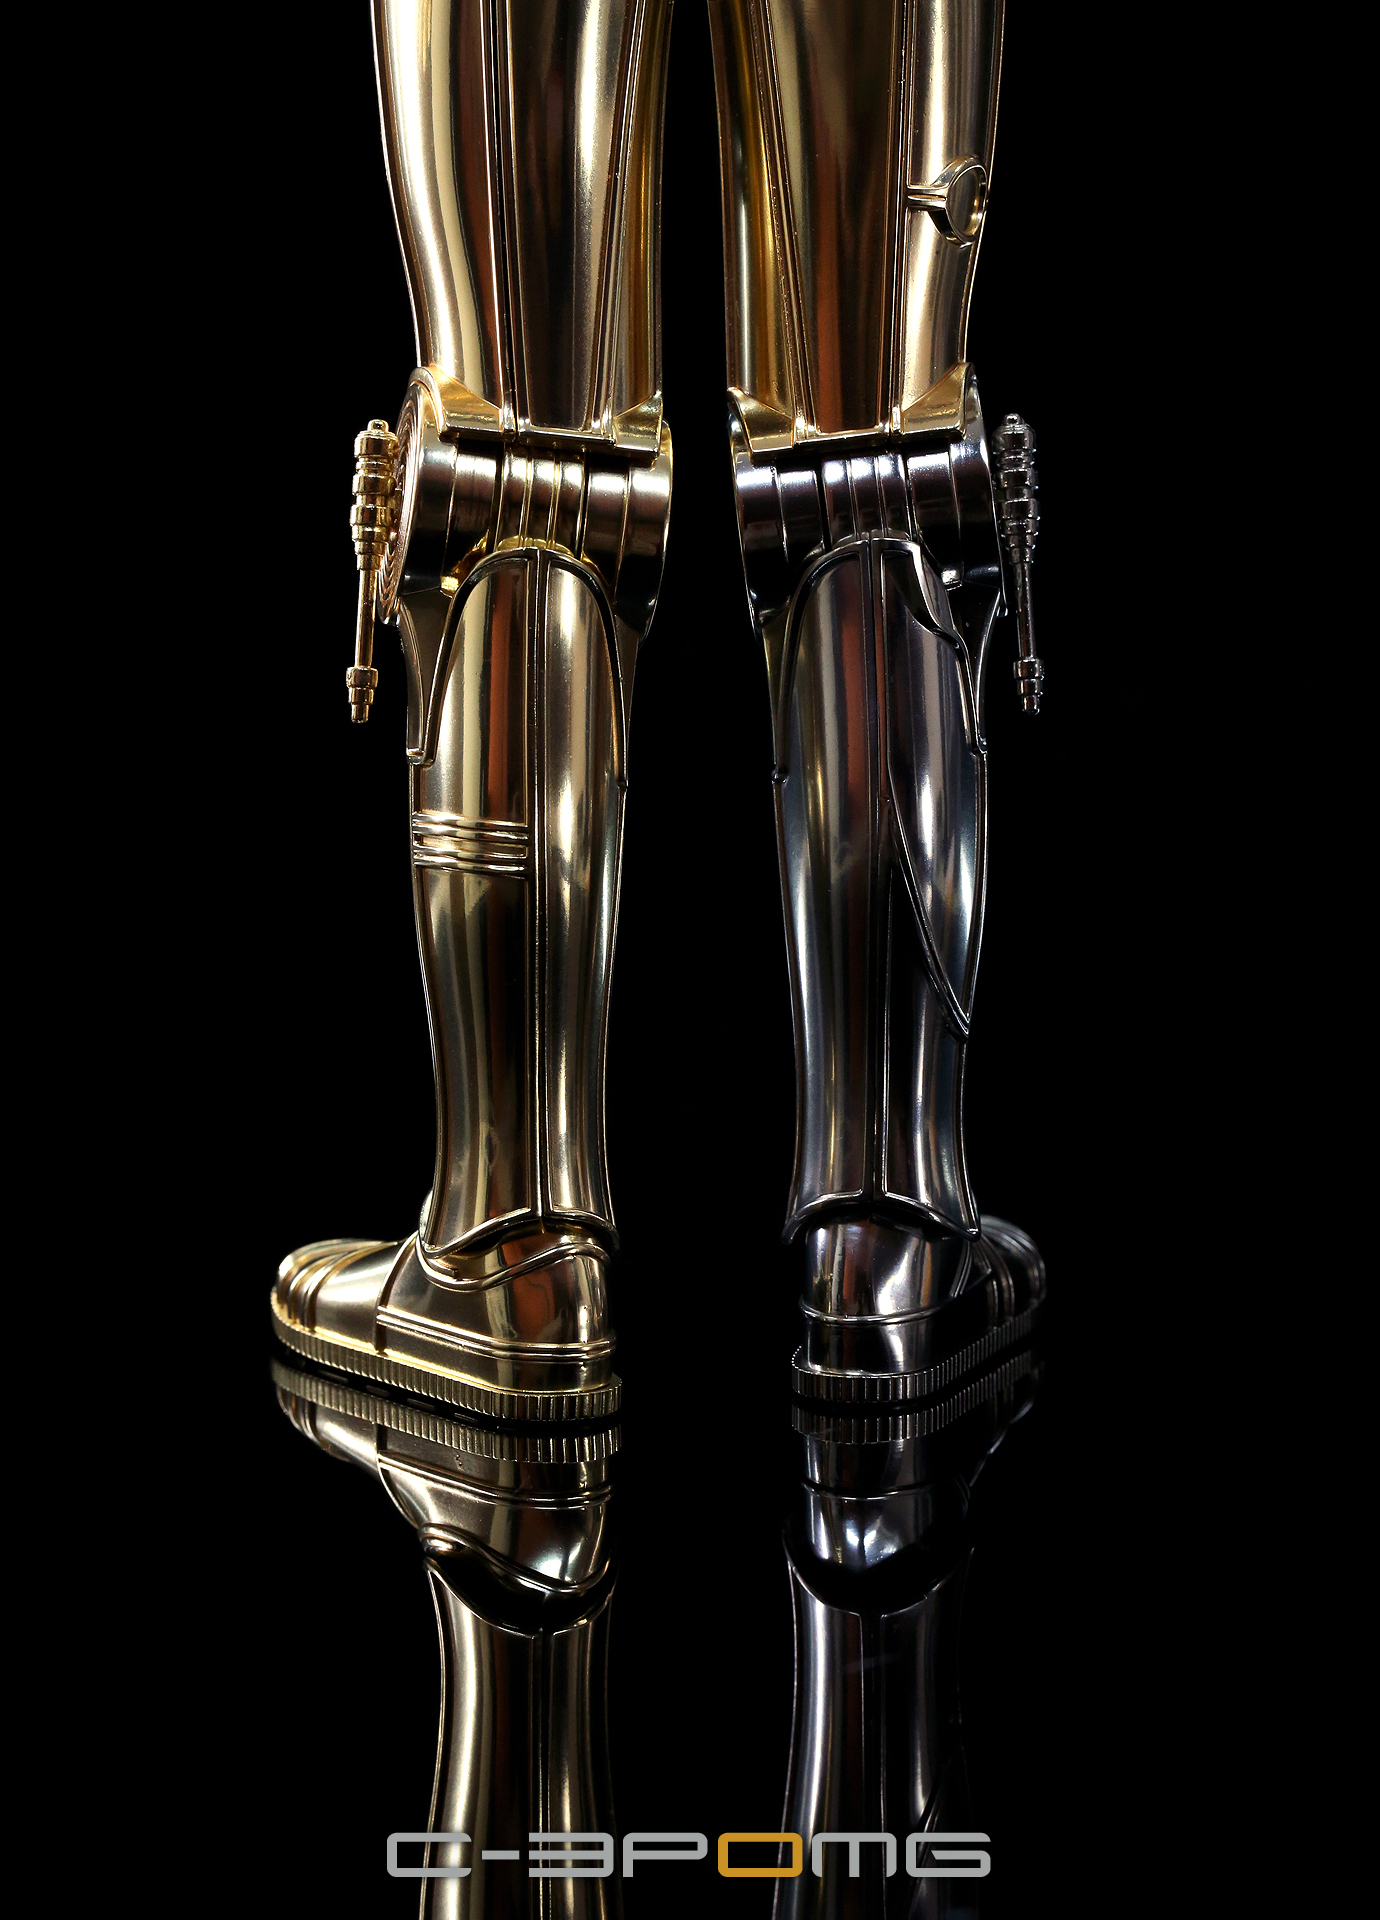 [Bandai] Star Wars: C-3PO - Perfect Model 1/6 scale - LANÇADO!!! - Página 2 C-3PO1135_zpsfbb1d578